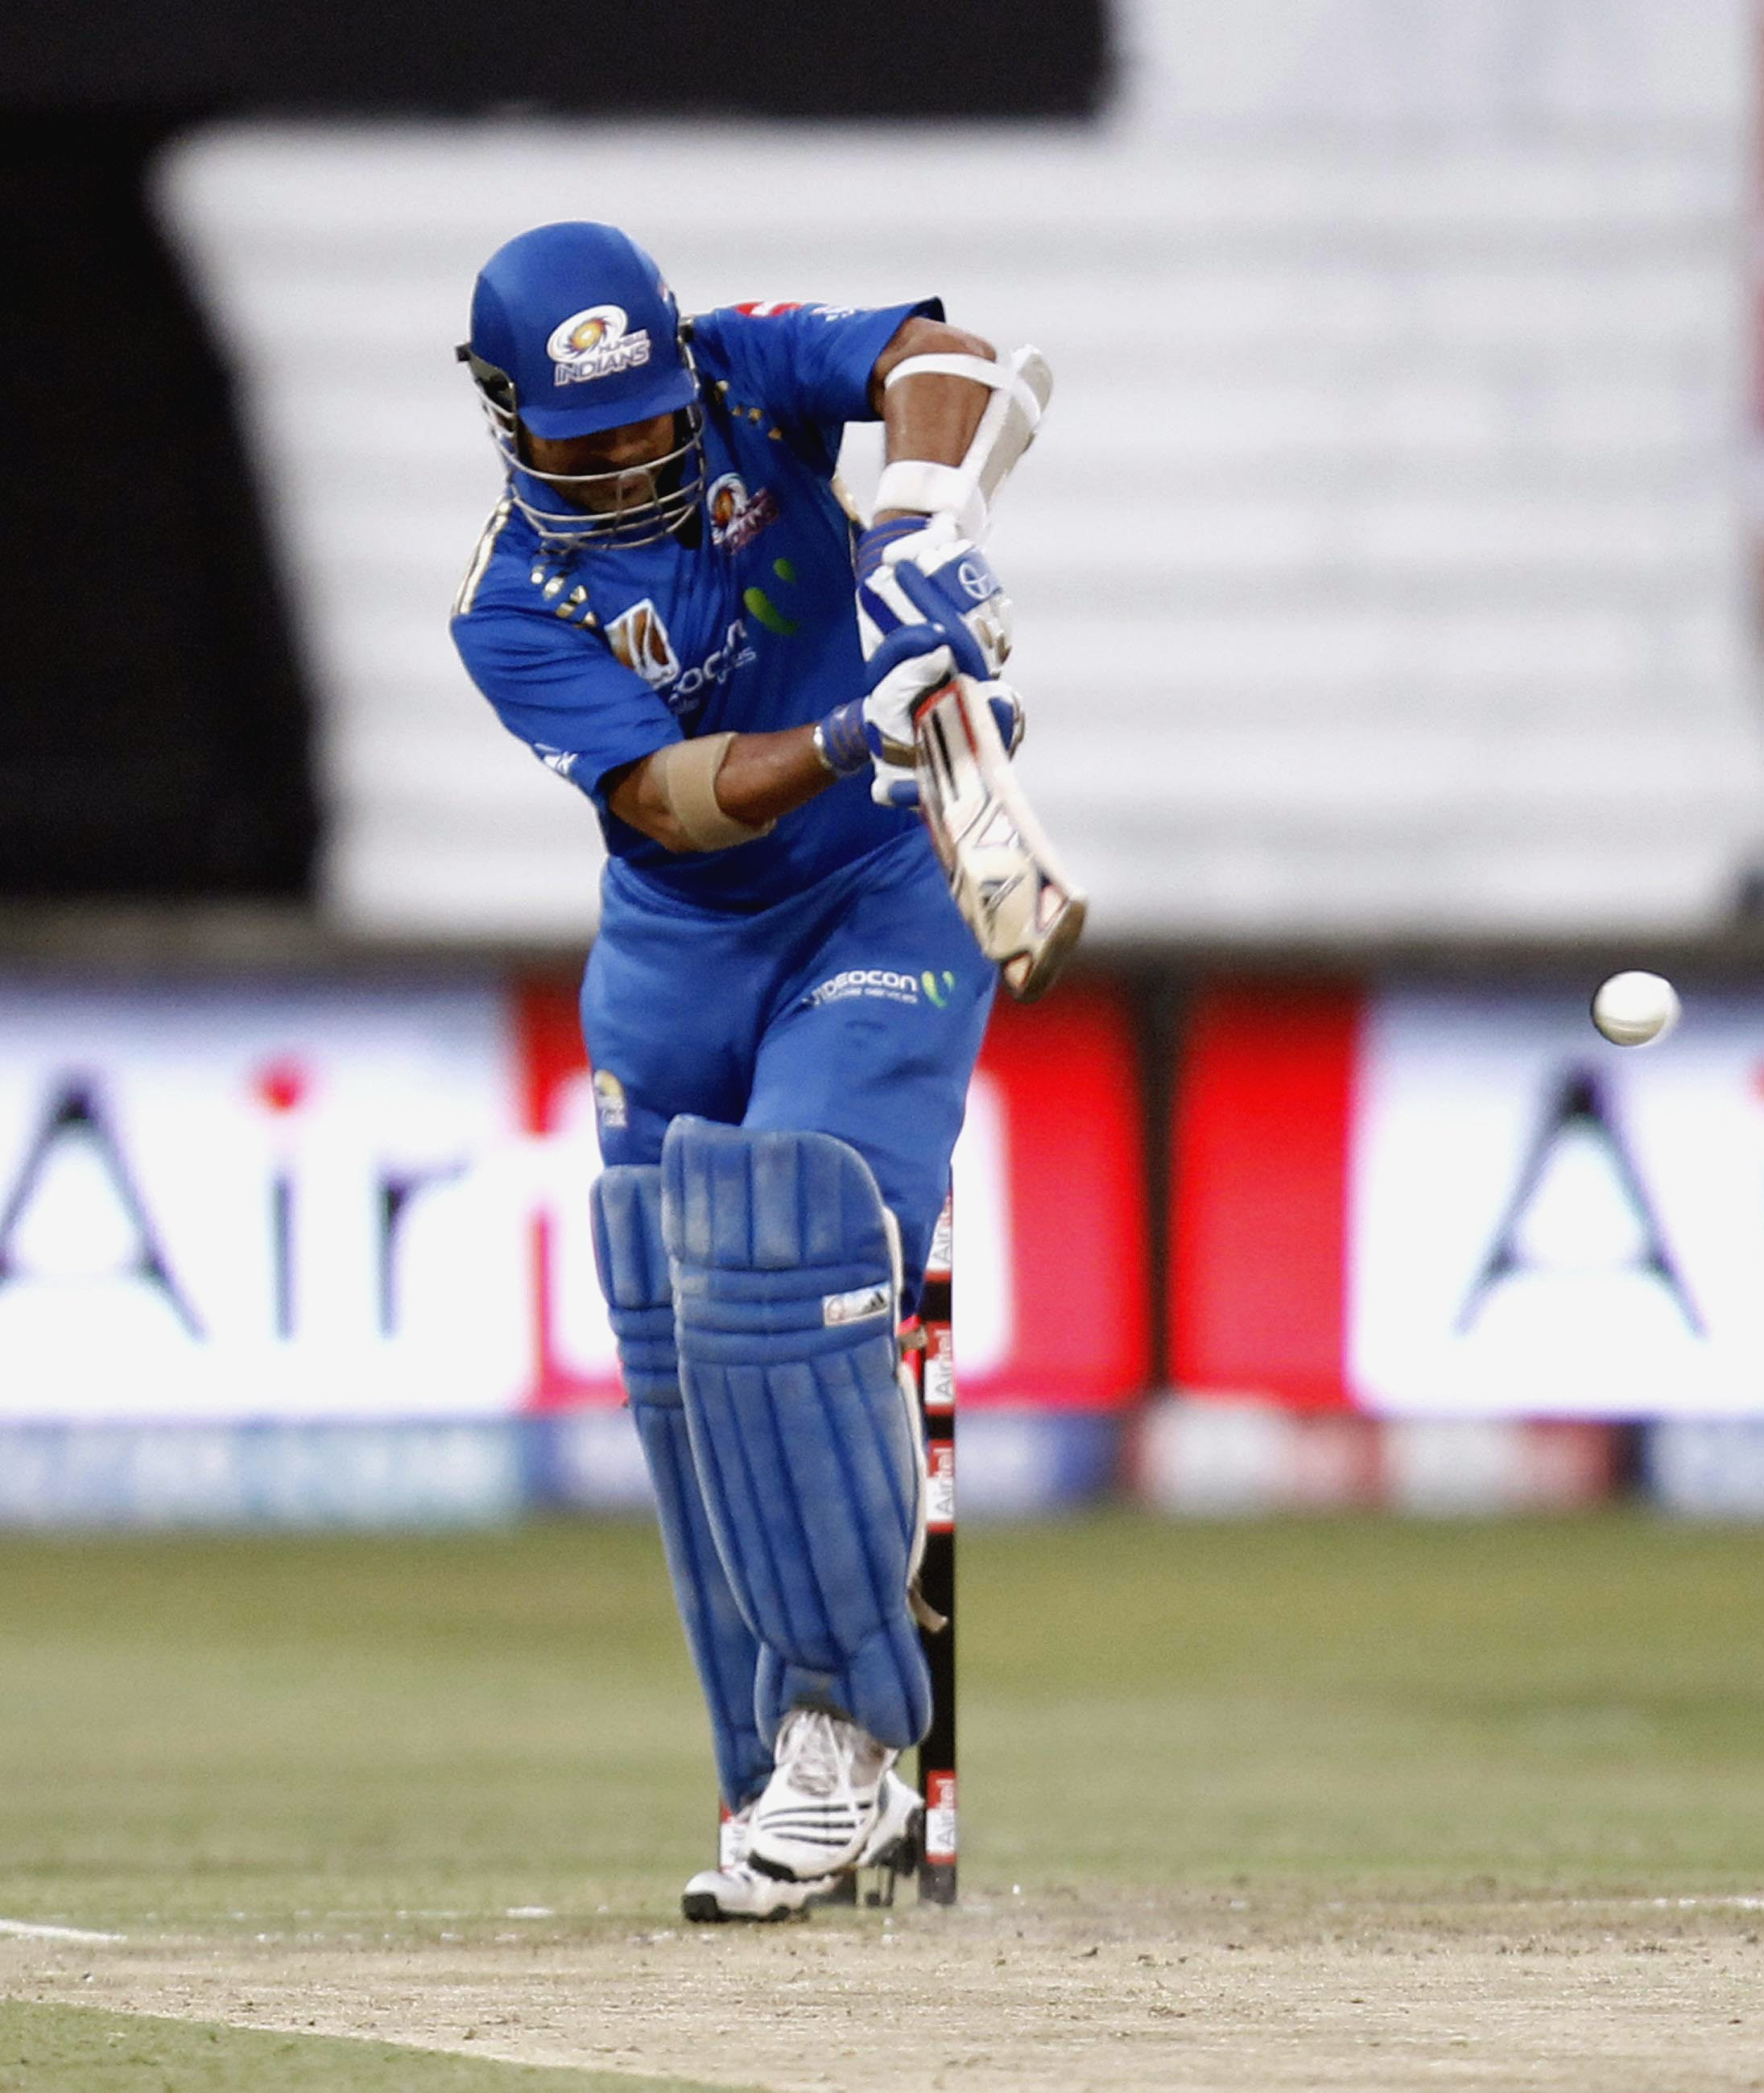 DURBAN, SOUTH AFRICA - SEPTEMBER 19: Sachin Tendulkar of the Mumbai Indians of hits out during the Airtel Champions League Twenty20 match between Mumbai Indians and Royal Challengers Bangalore at Sahara Stadium Kingsmead on September 19, 2010 in Durban, S